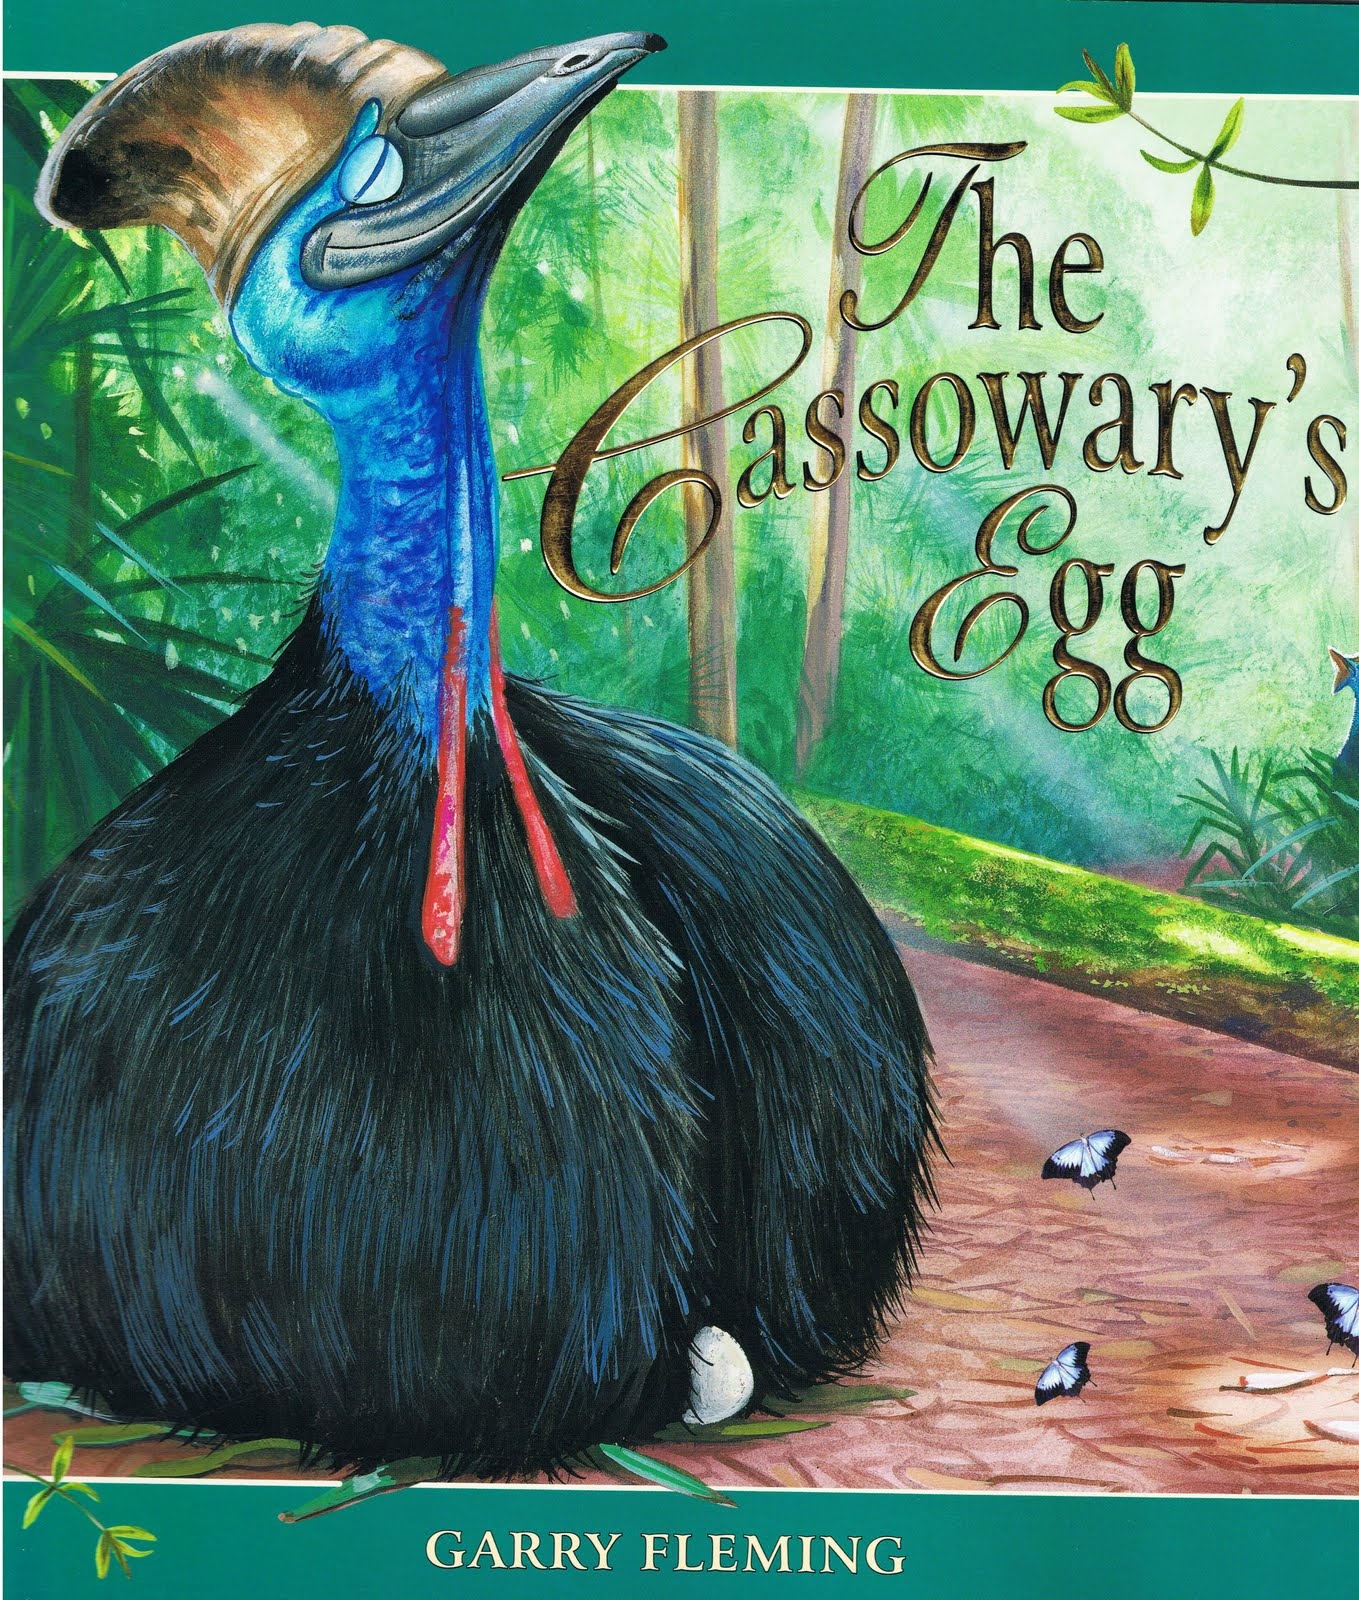 Little Library Of Rescued Books: The Cassowary's Egg By